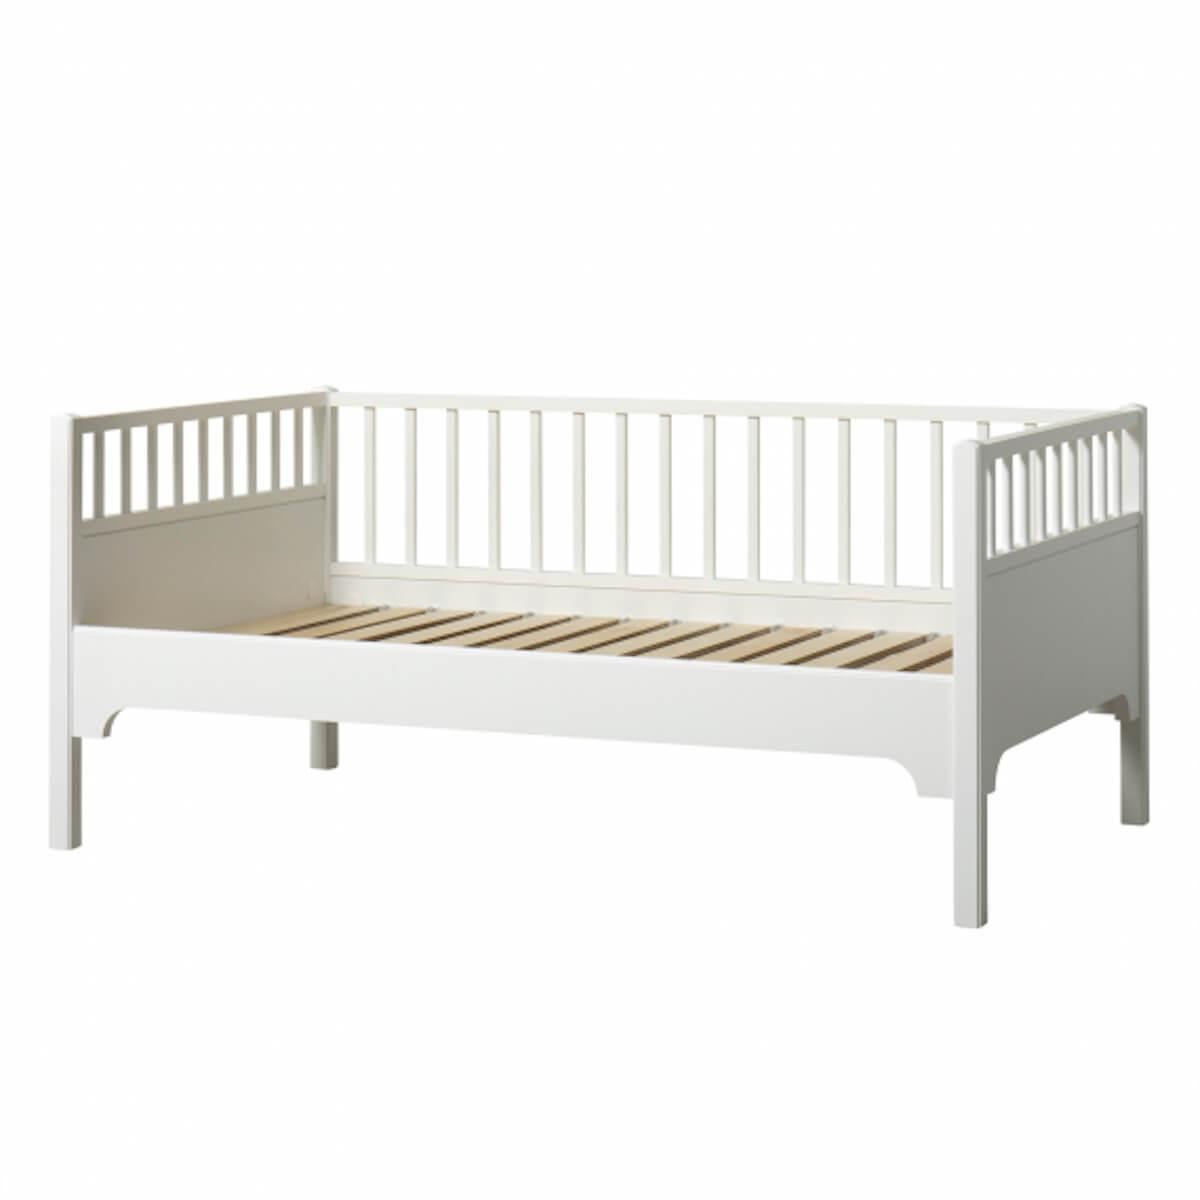 Cama-sofá 90x160cm SEASIDE CLASSIC Oliver Furniture blanco